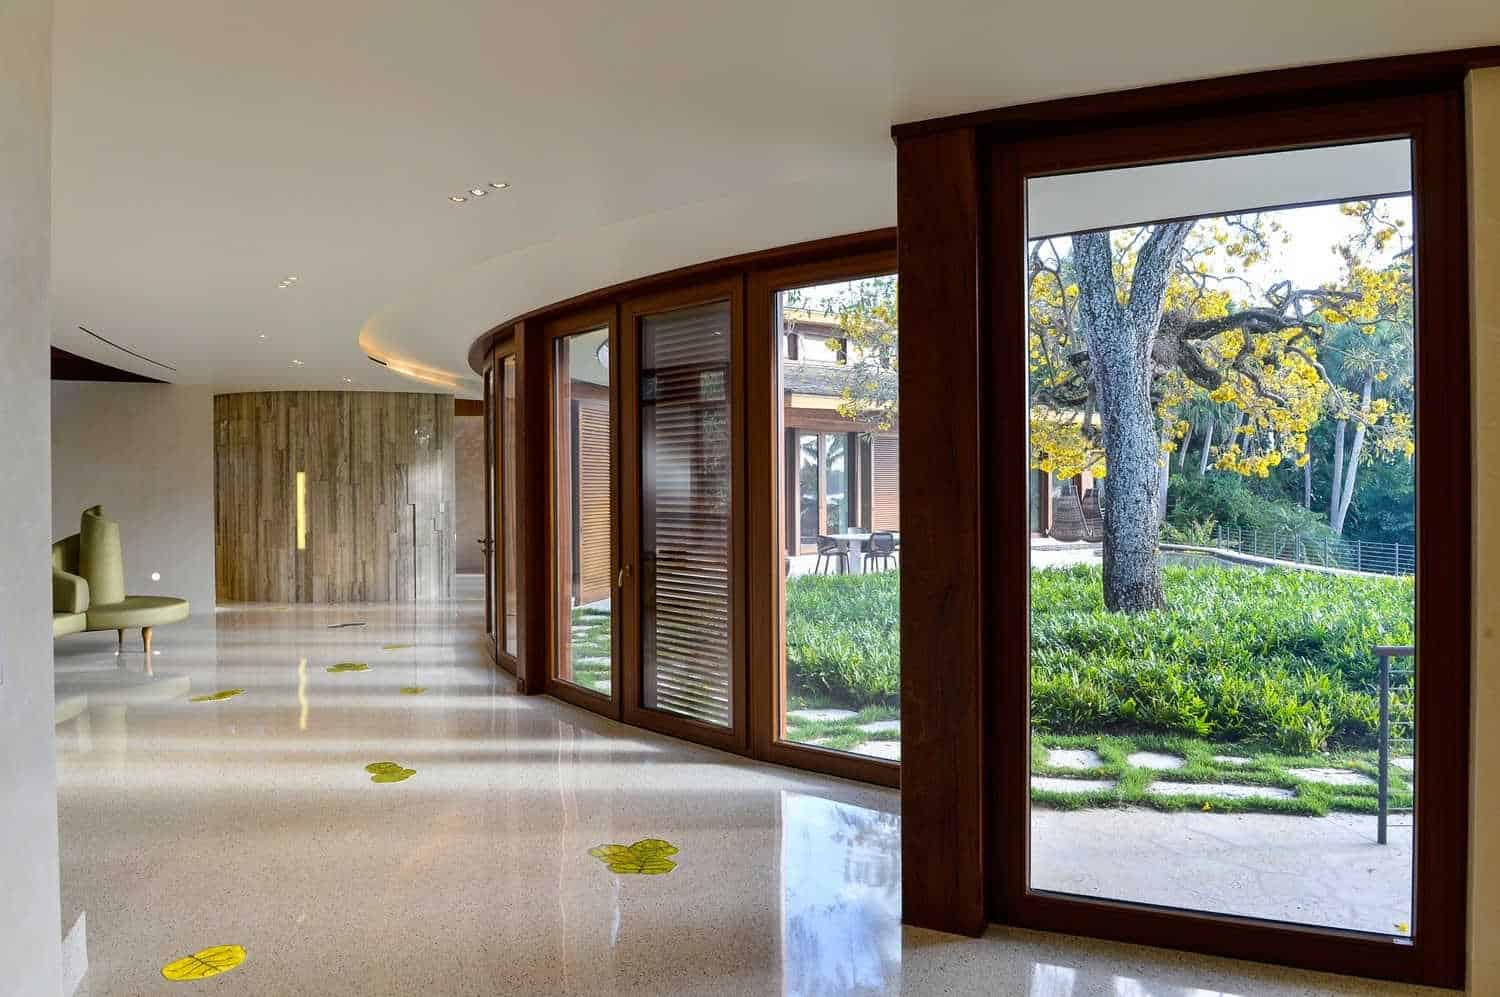 This large foyer features a smooth flooring with designs and glass doors and windows overlooking the outdoor space.